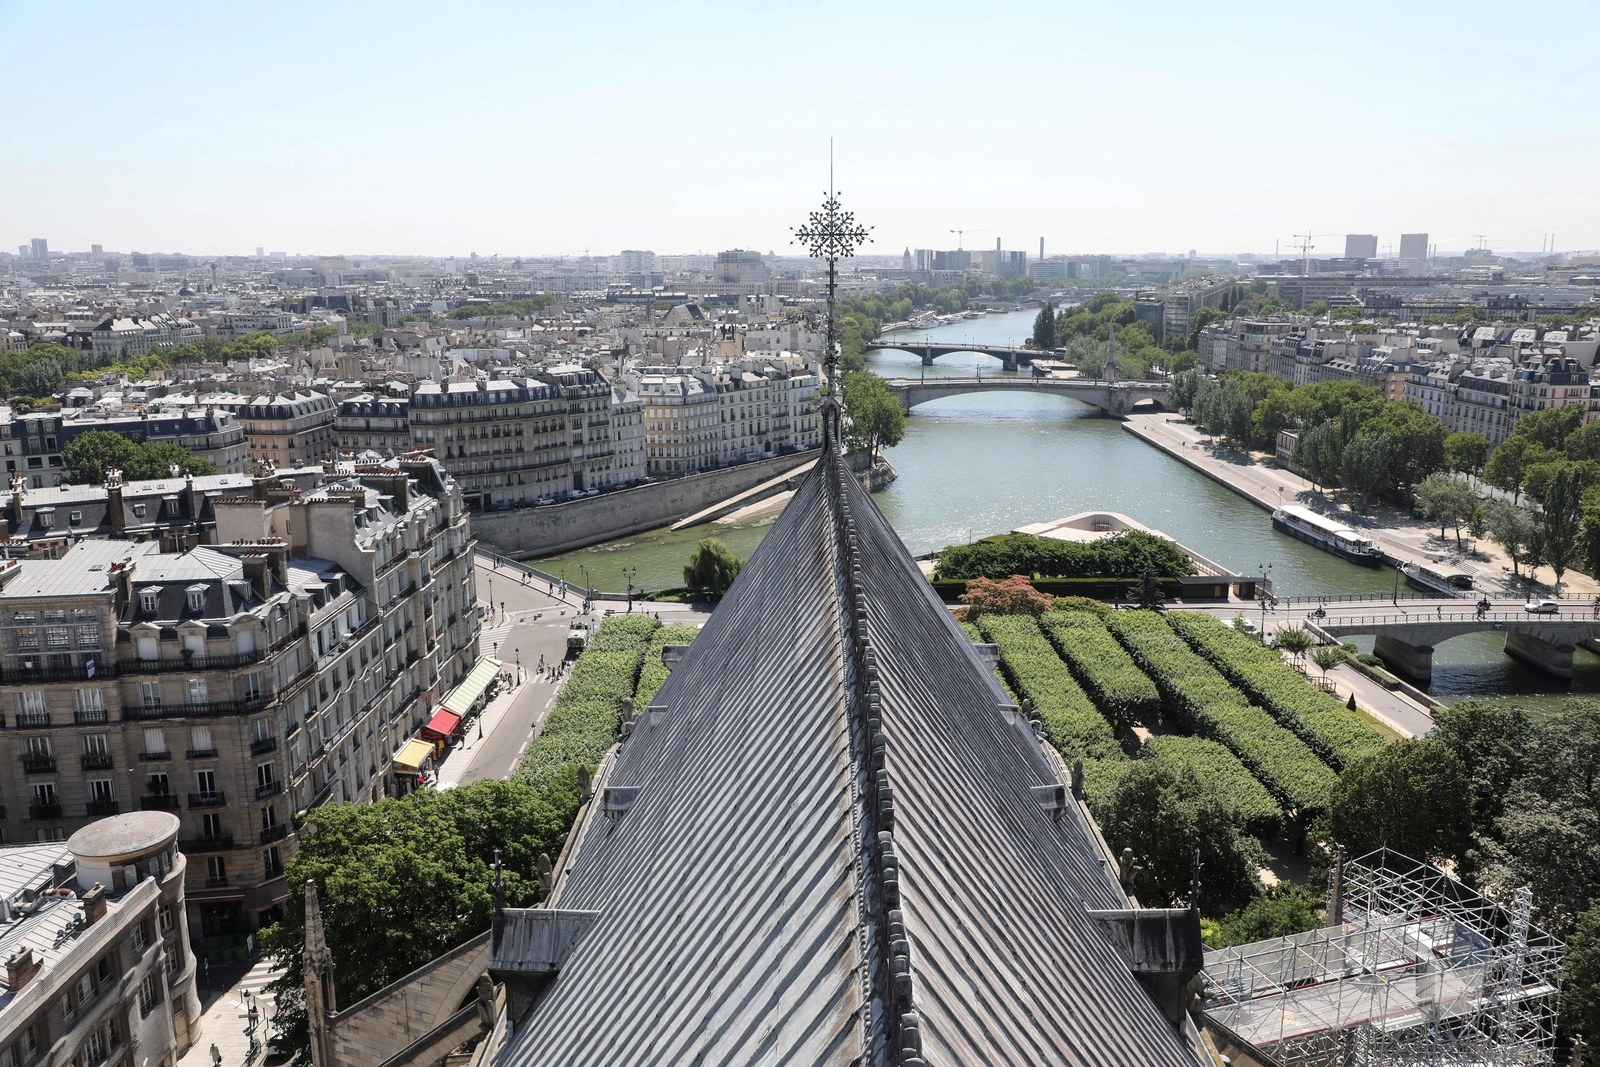 A view of the Seine river and its surroundings from the Notre Dame Cathedral on June 26, 2018.